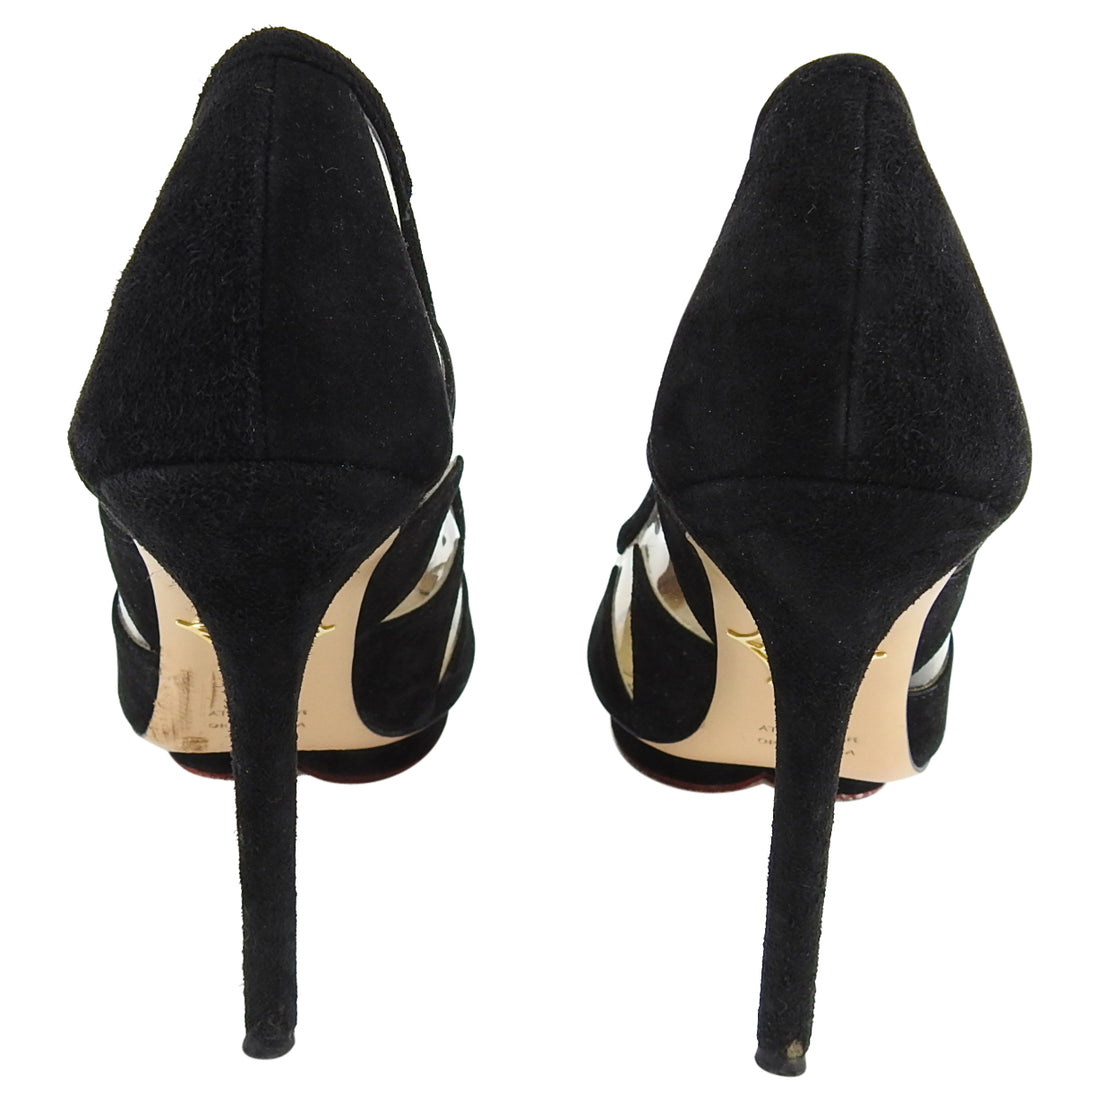 Charlotte Olympia Ana Maria Black Suede and Vinyl Pumps - 38.5